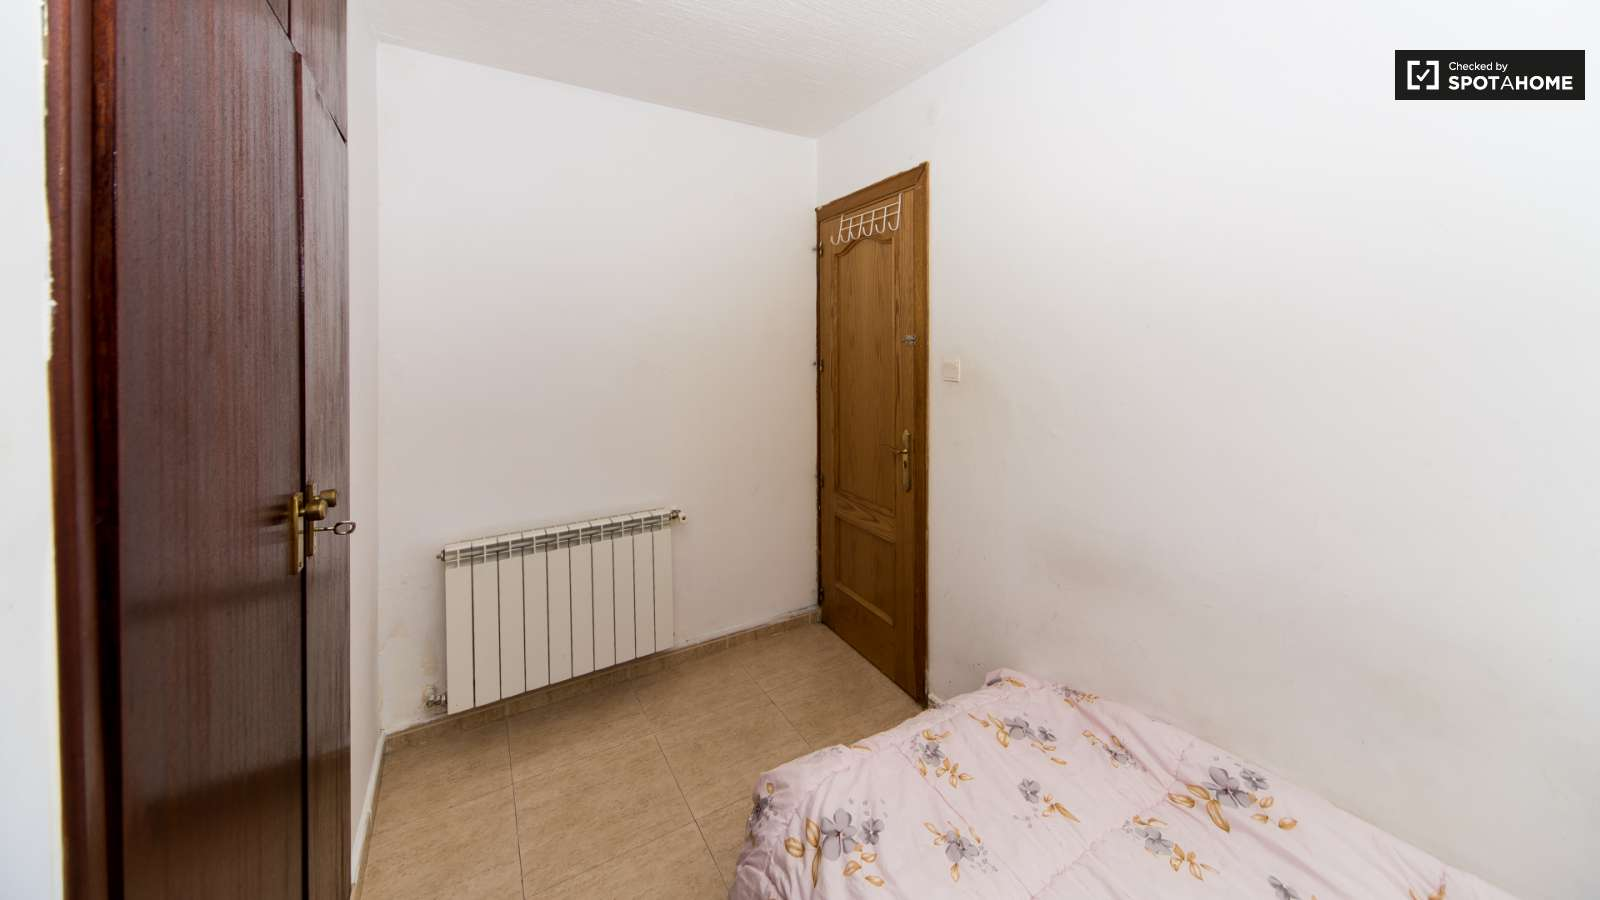 Single Bed Bedroom Single Bed In Rooms For Young People In A Modern 4 Bedroom Flat In